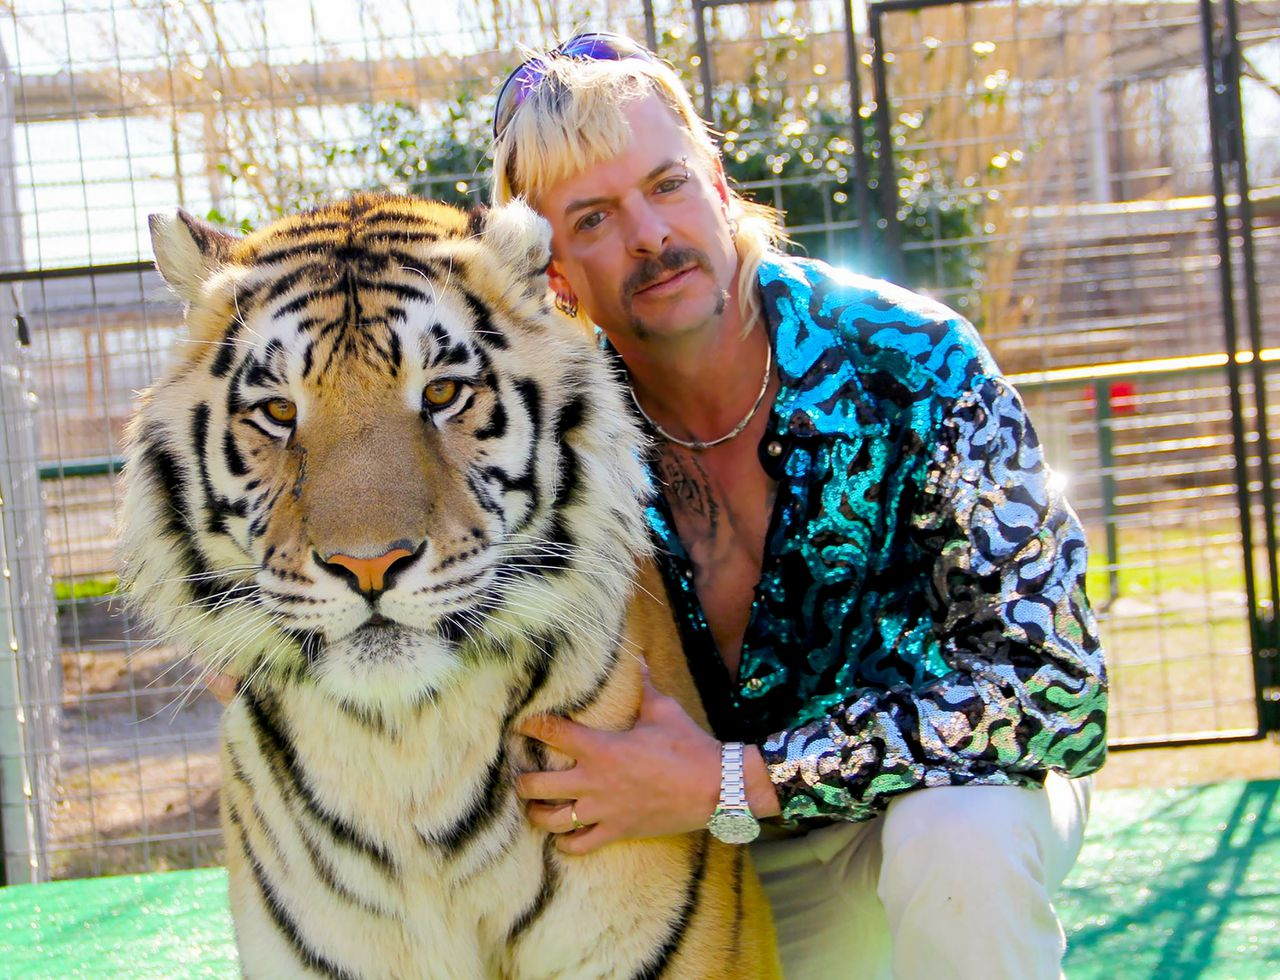 Joe Exotic uit de documentaire Tiger King.